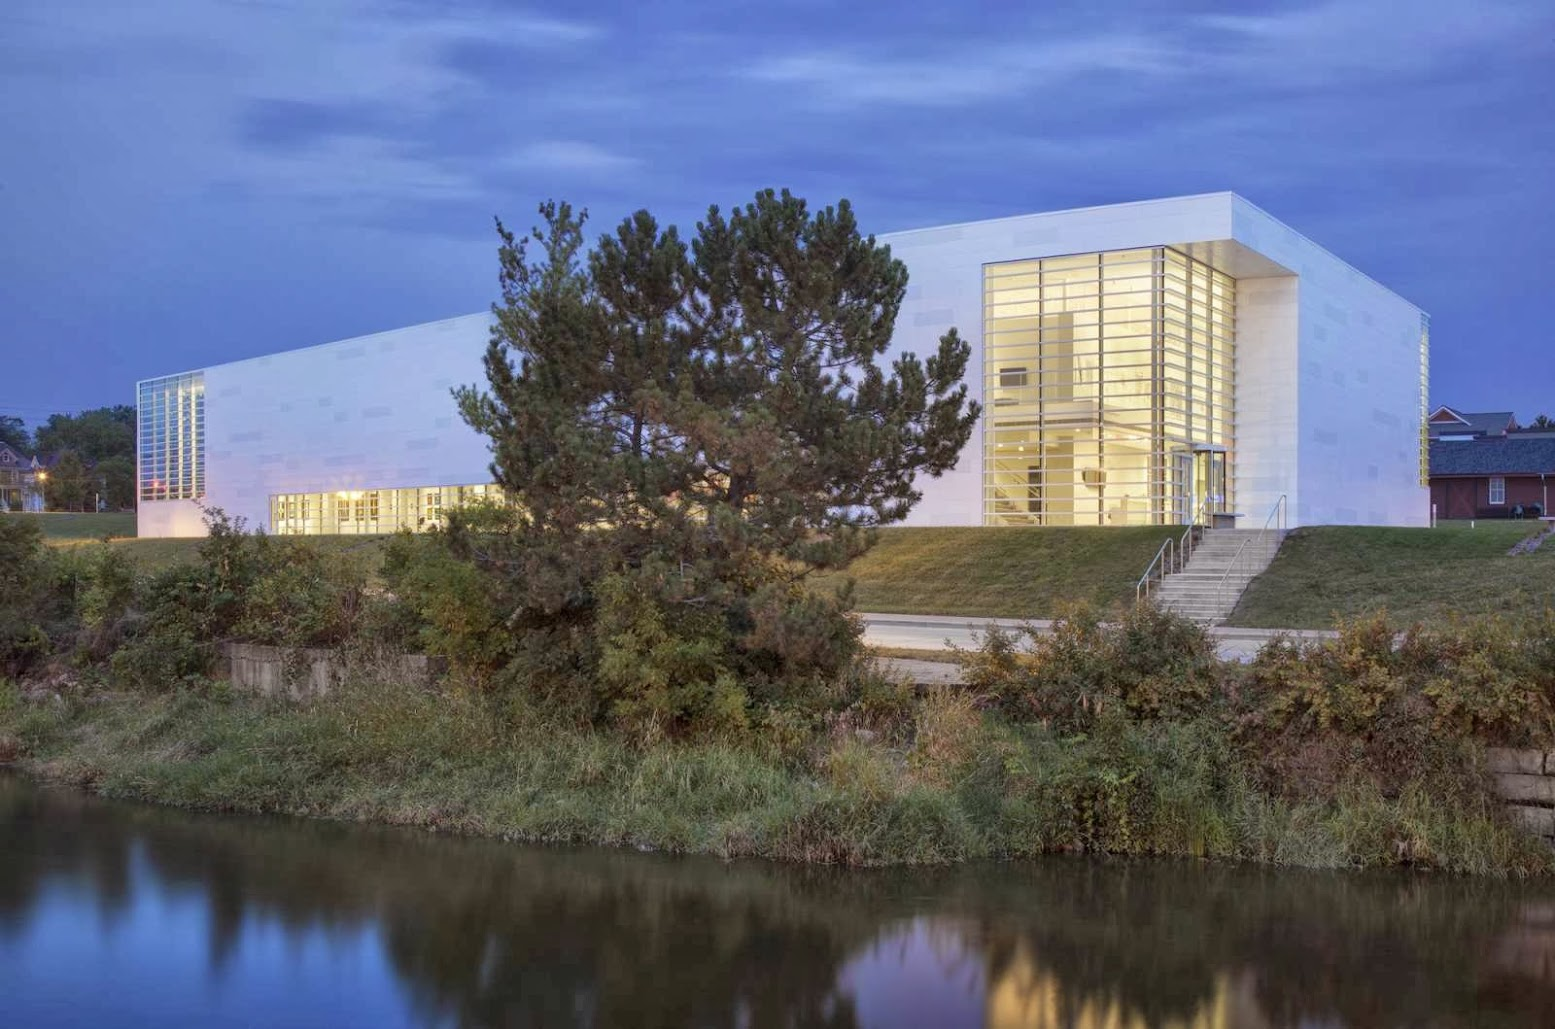 Museum of Wisconsin Art by HGA Architects and